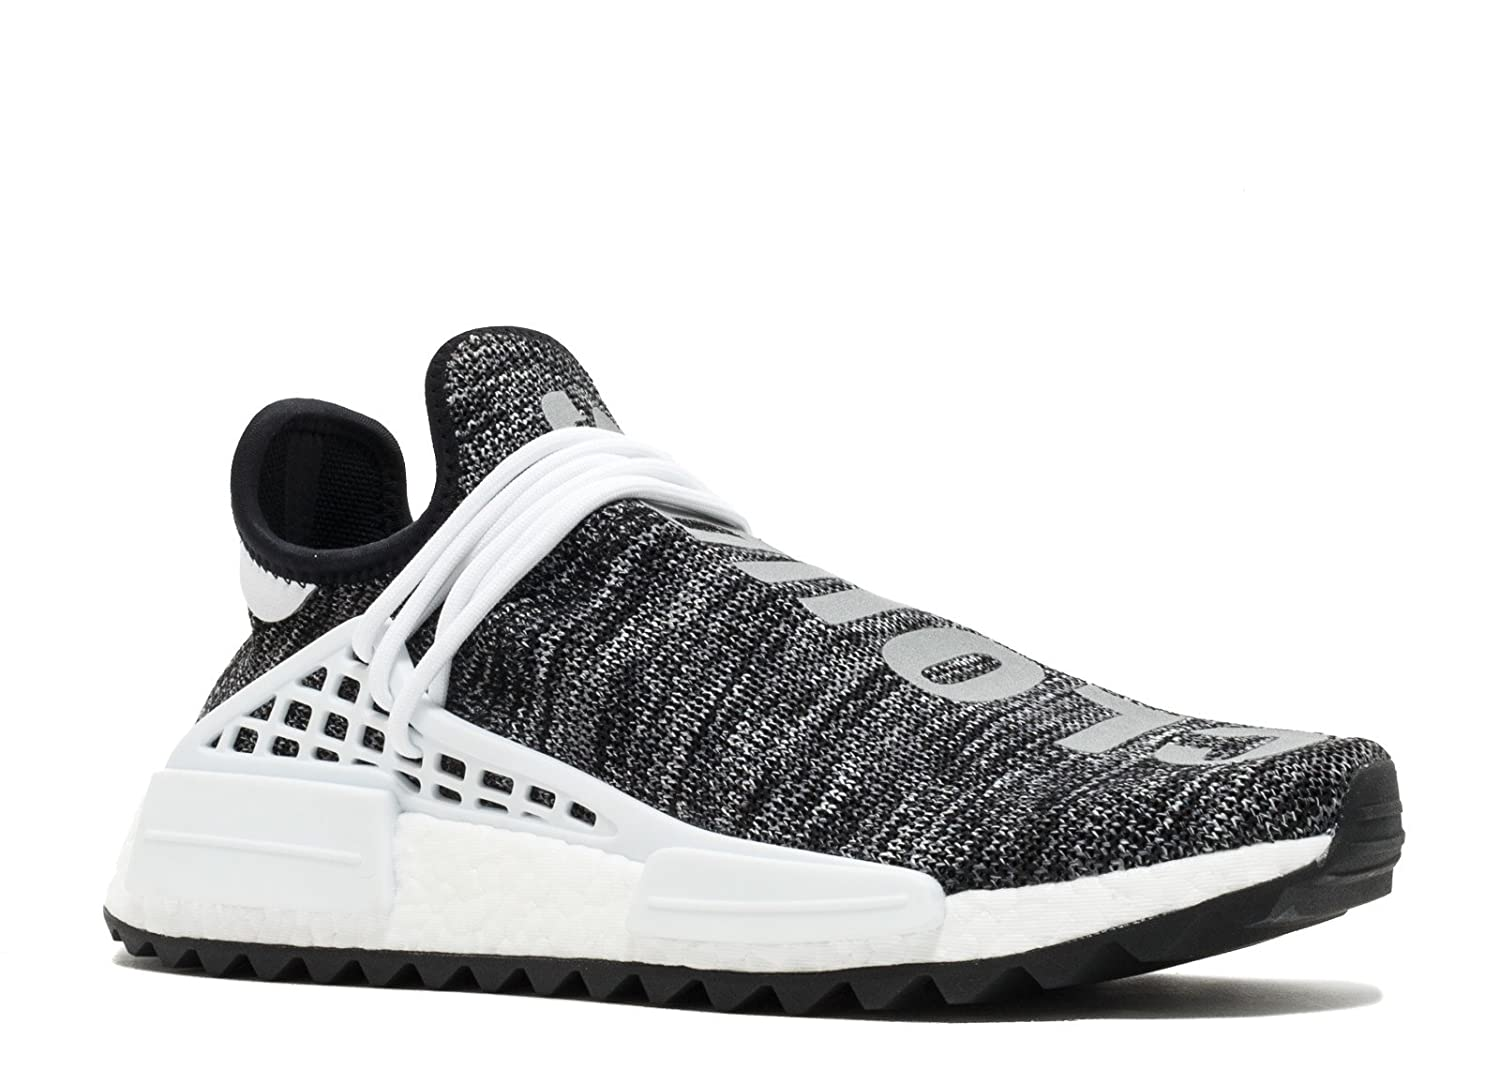 new style 3574b 4e6f8 adidas Originals PW Human Race NMD Trail Shoe - Men's Hiking 10 Core  Black/White